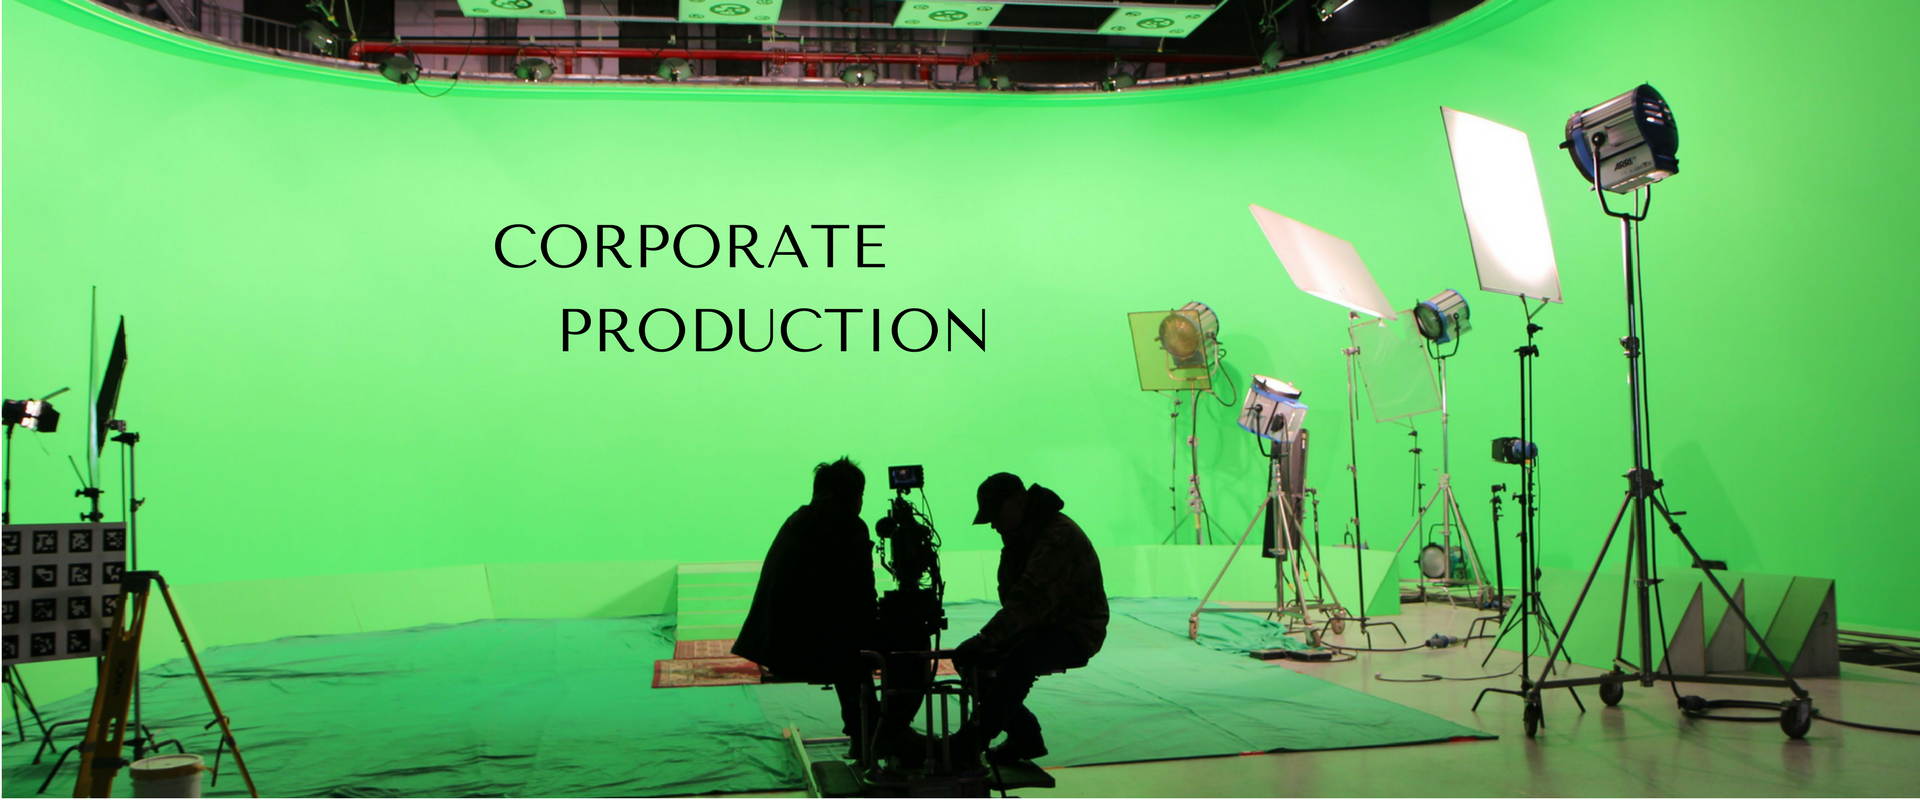 CORPORATE PRODUCTION (2)